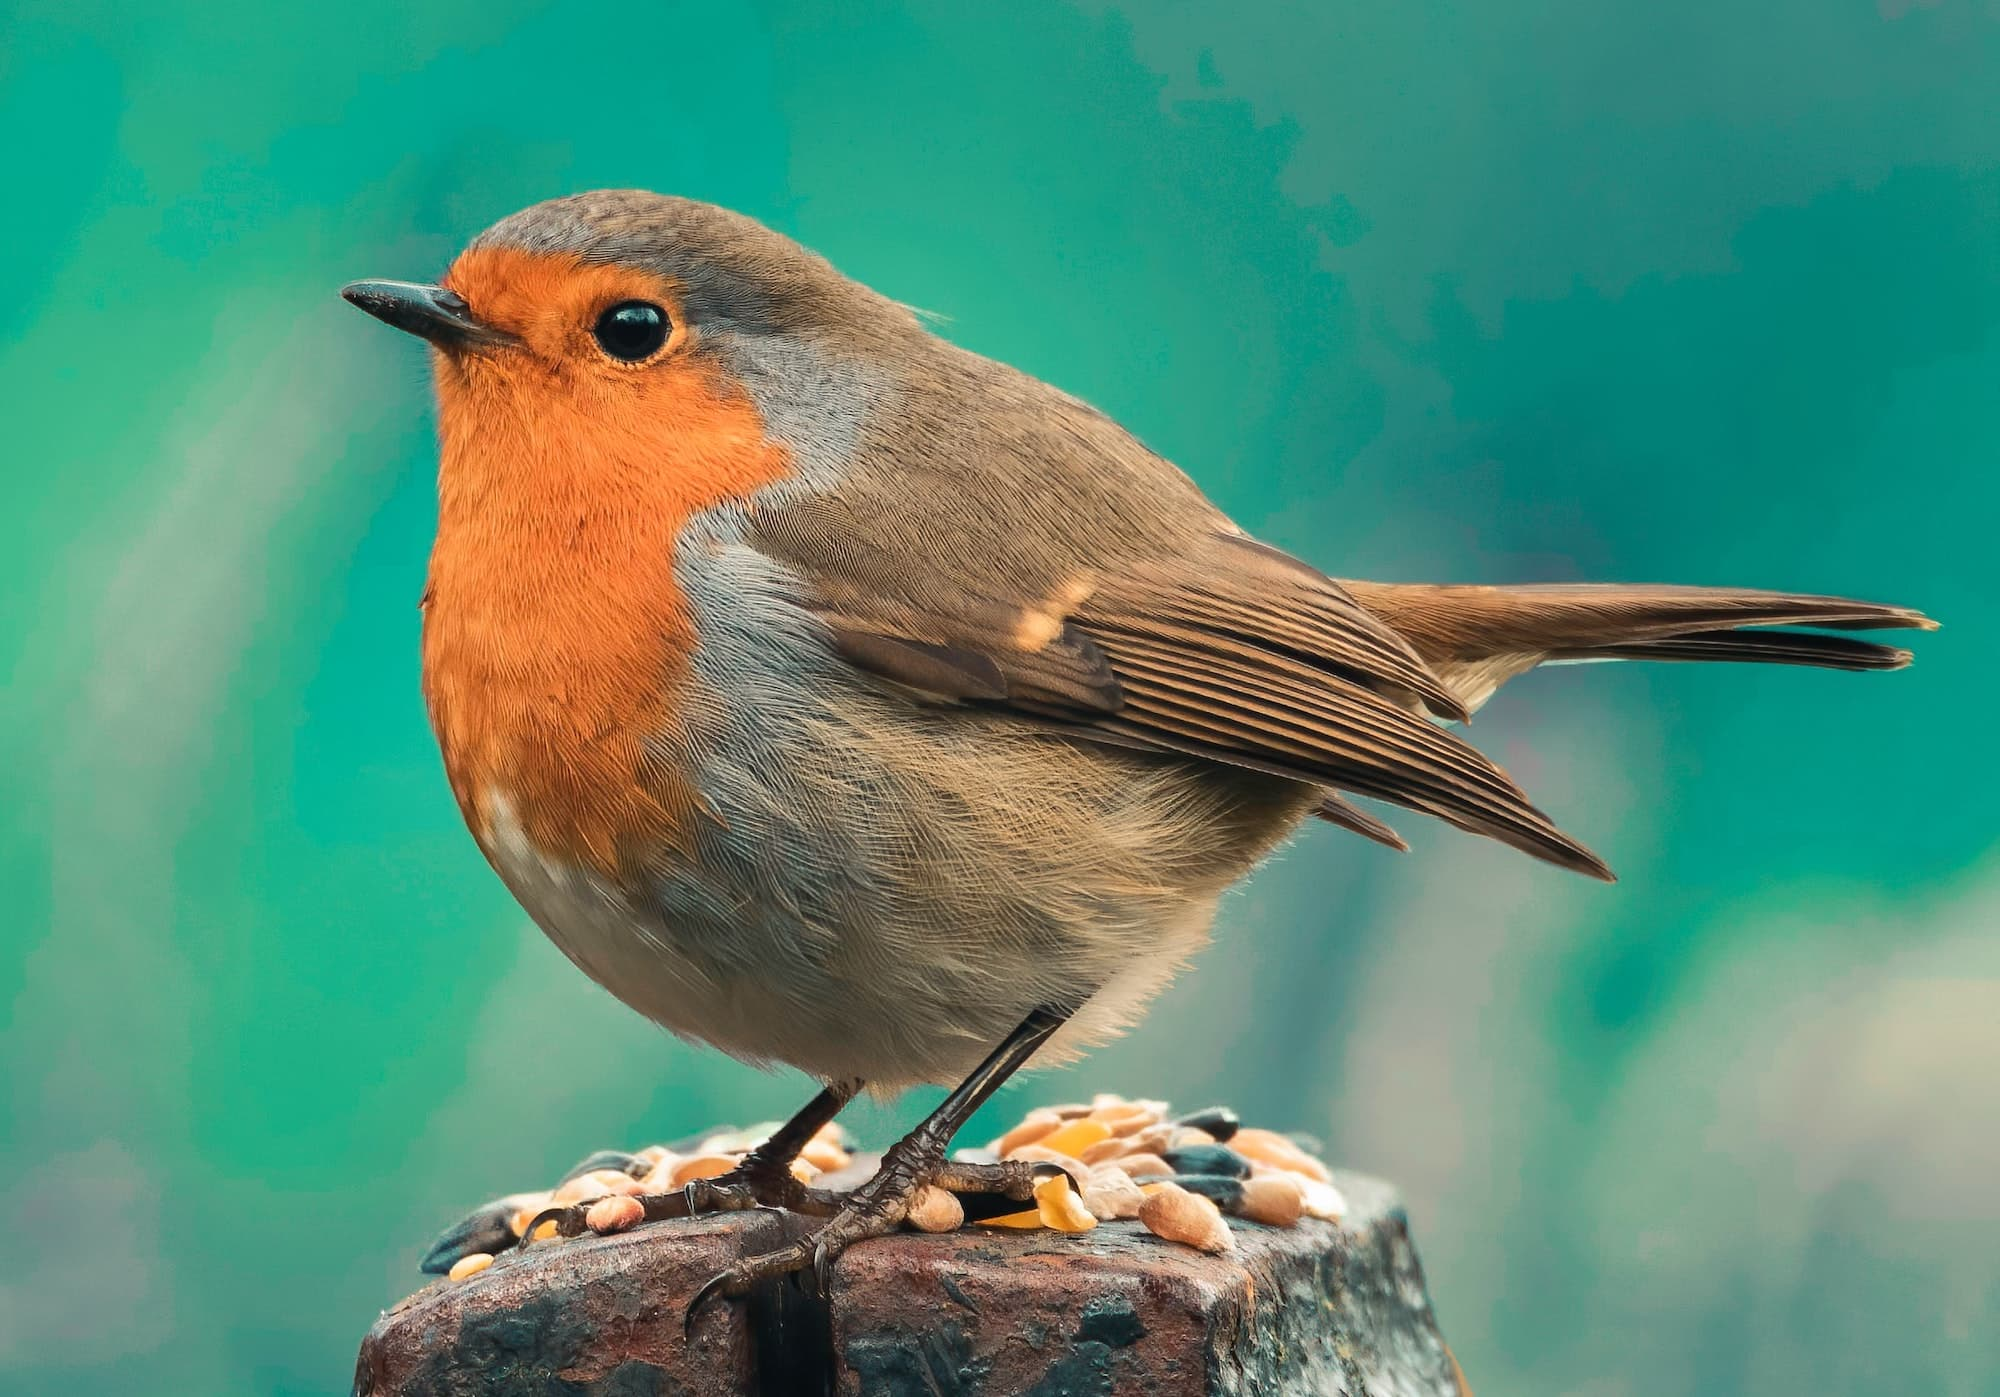 Robin sitting on a wooden post.